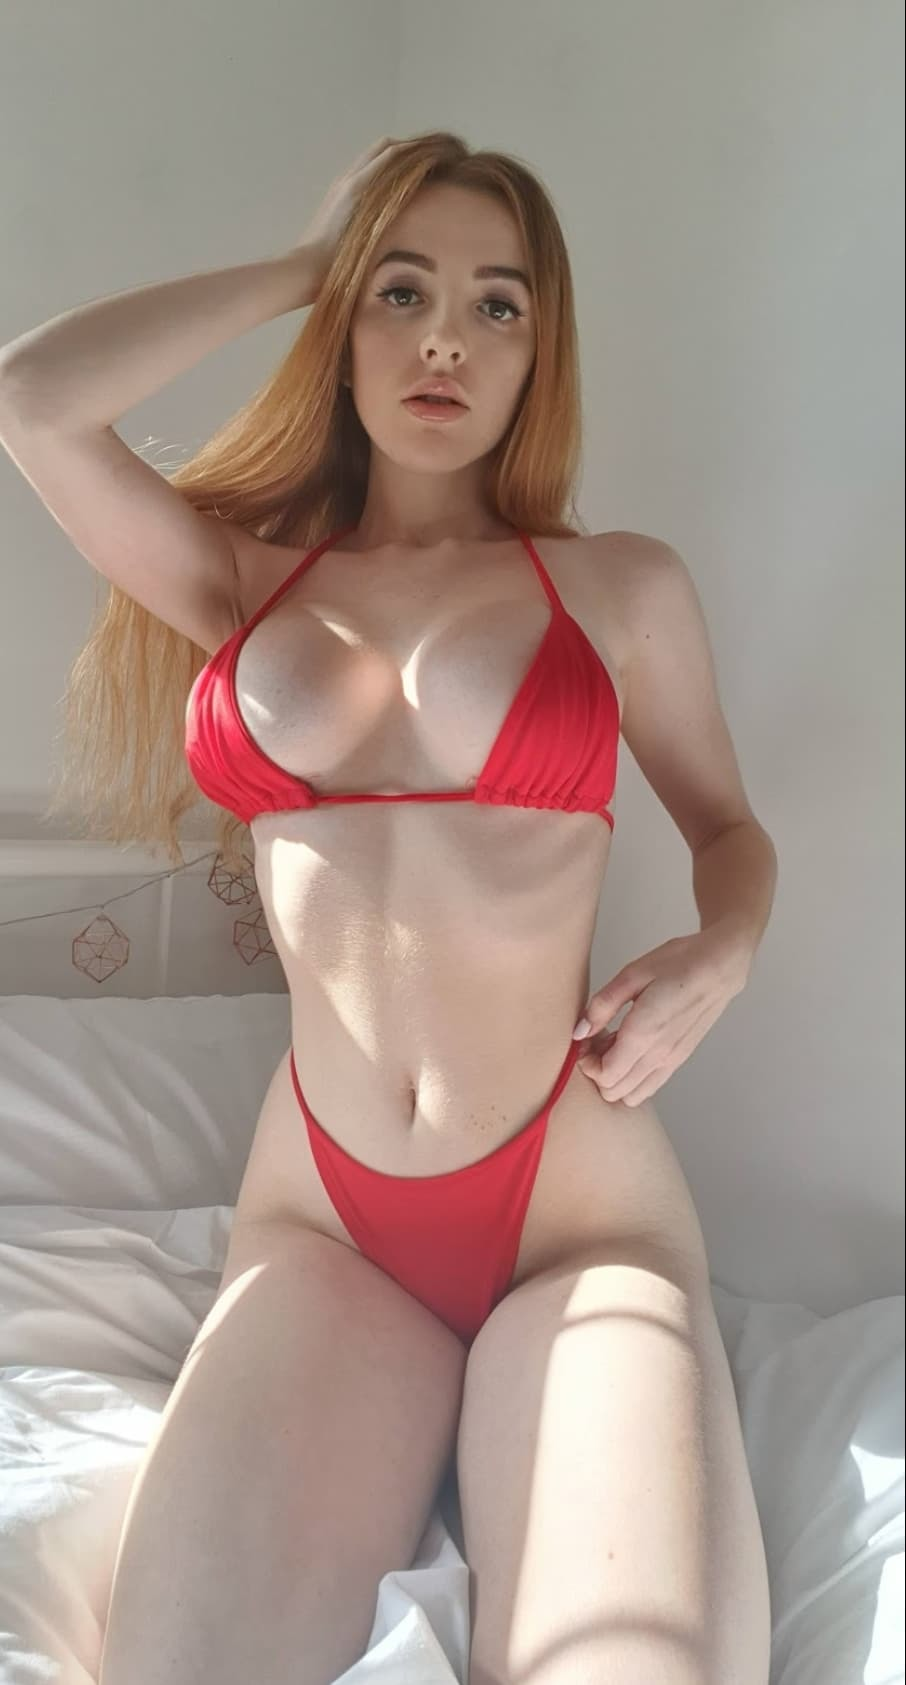 Scarlet Jones in red lingerie standing tall full body facing the camera curvy big boobs